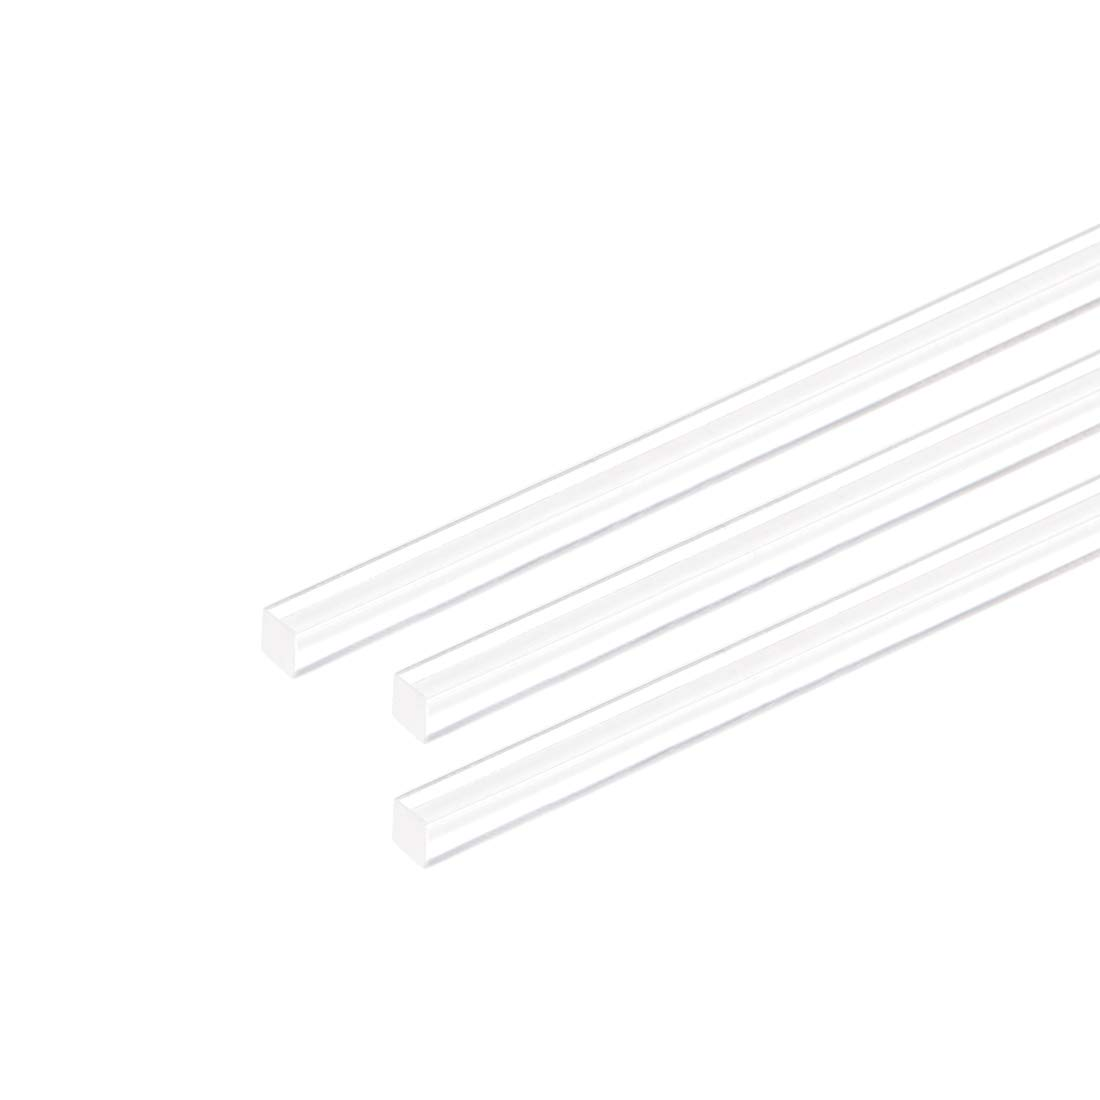 uxcell Acrylic Square Rod 3mmx3mmx10inch Clear Plastic Rod Solid PMMA Bar 2pcs